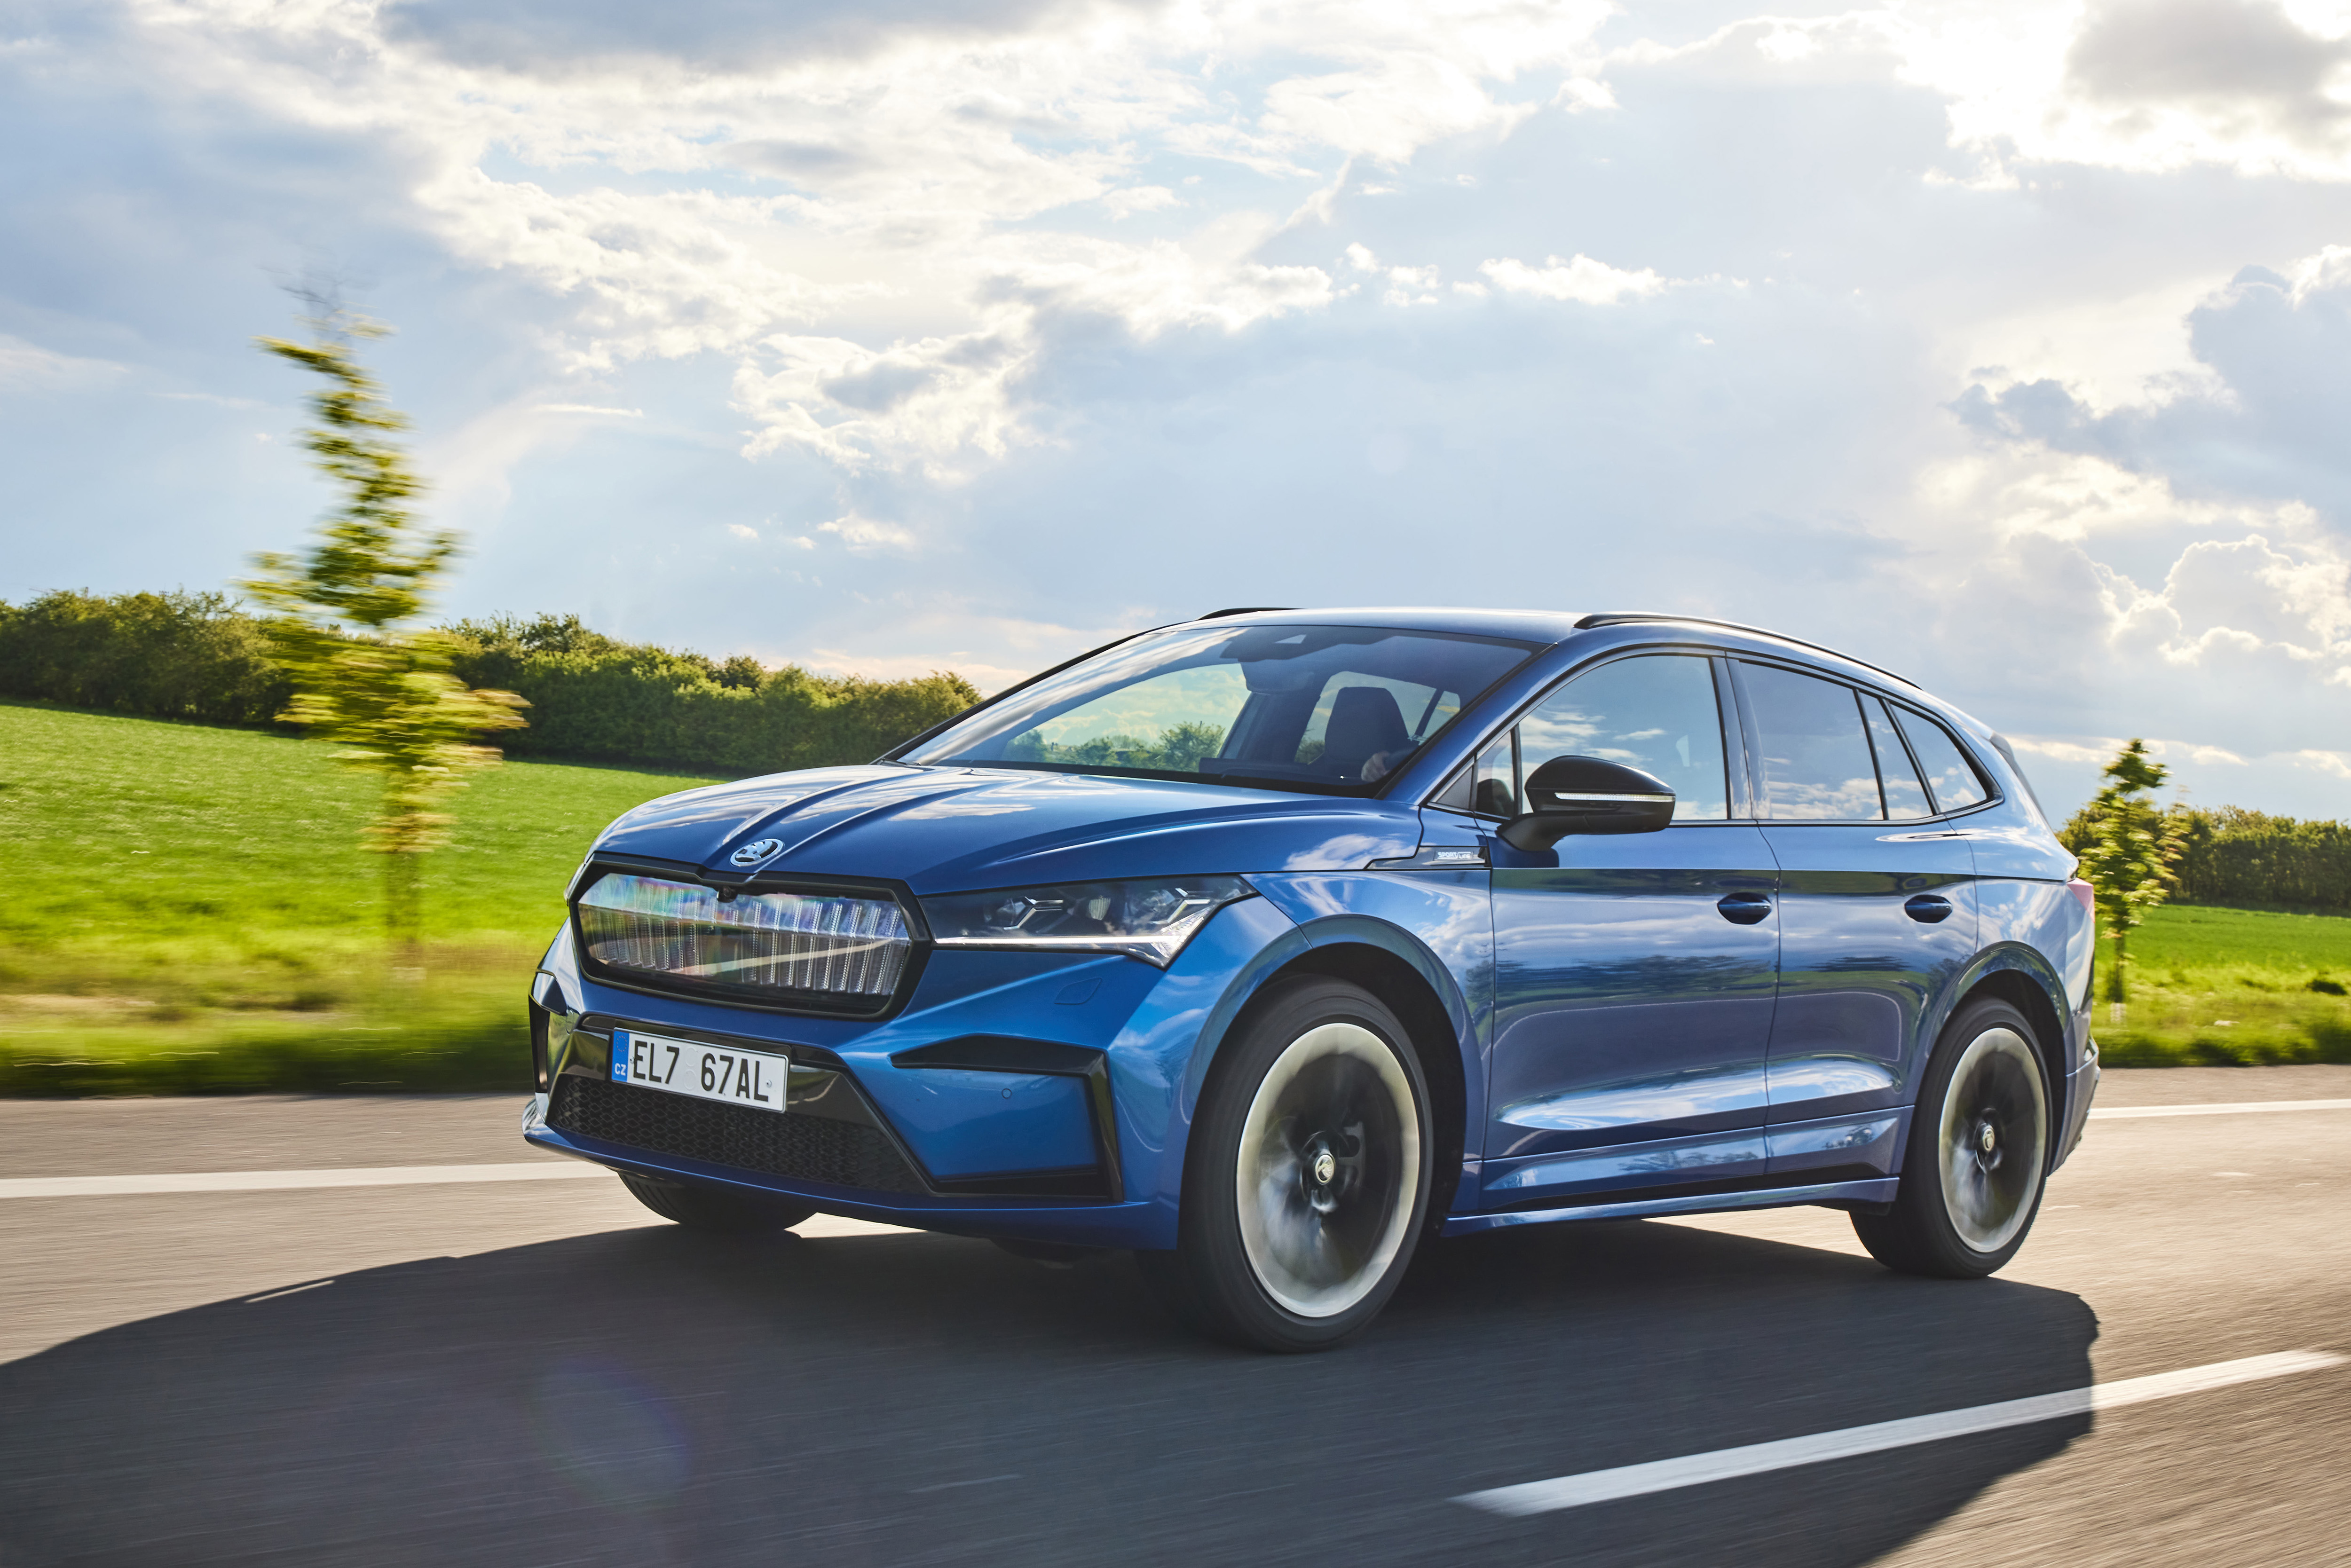 """SKODA ENYAQ iV and SKODA SUPERB COMBI win six awards in """"Family Cars of the Year"""" readers' poll - Image 2"""